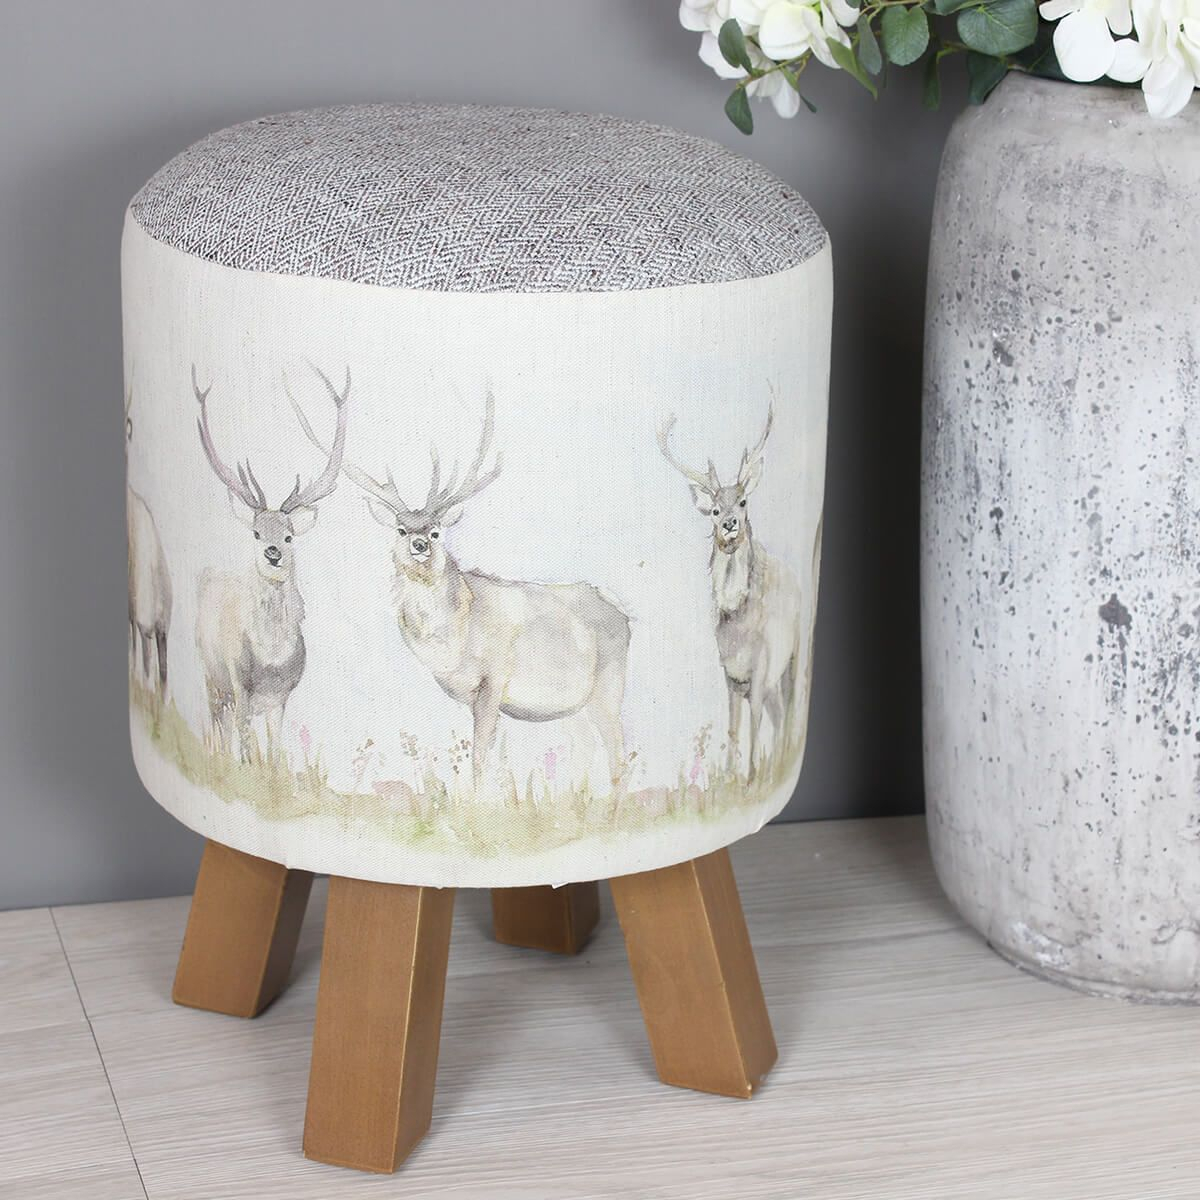 Pin On Footstool Regarding Fifi Ceramic Garden Stools (View 18 of 25)